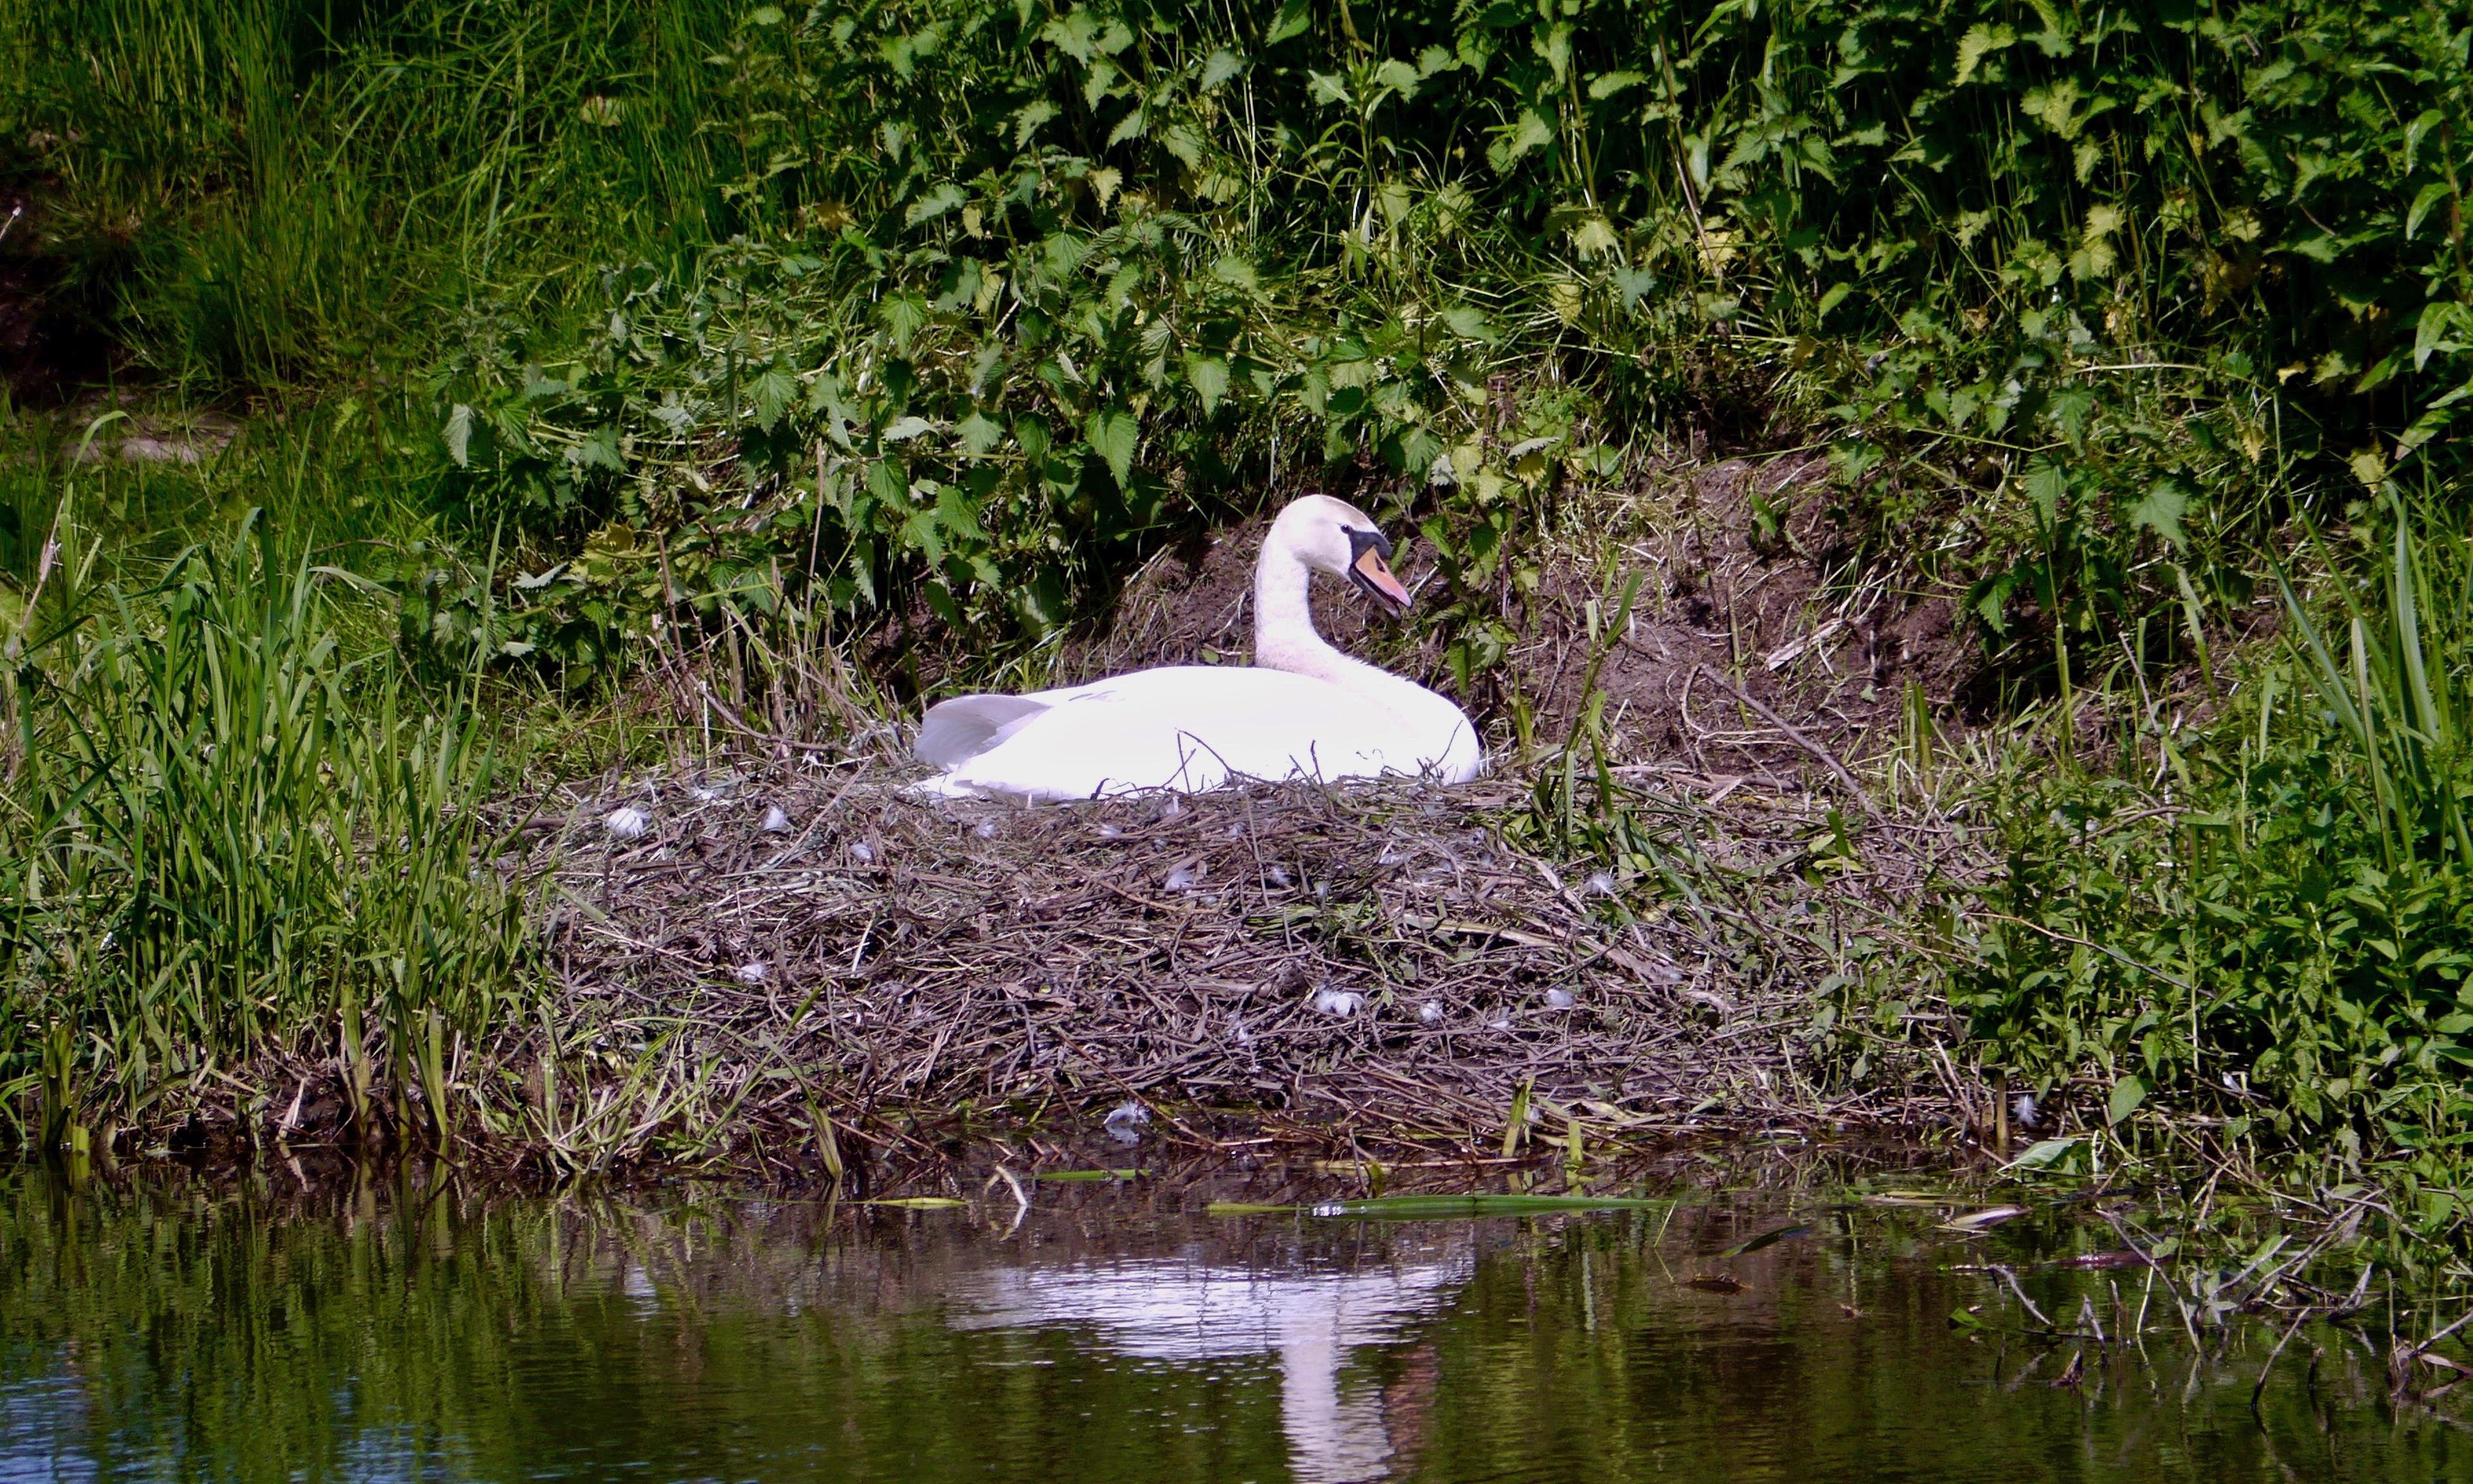 Country diary: a swan builds a fortress for a nest